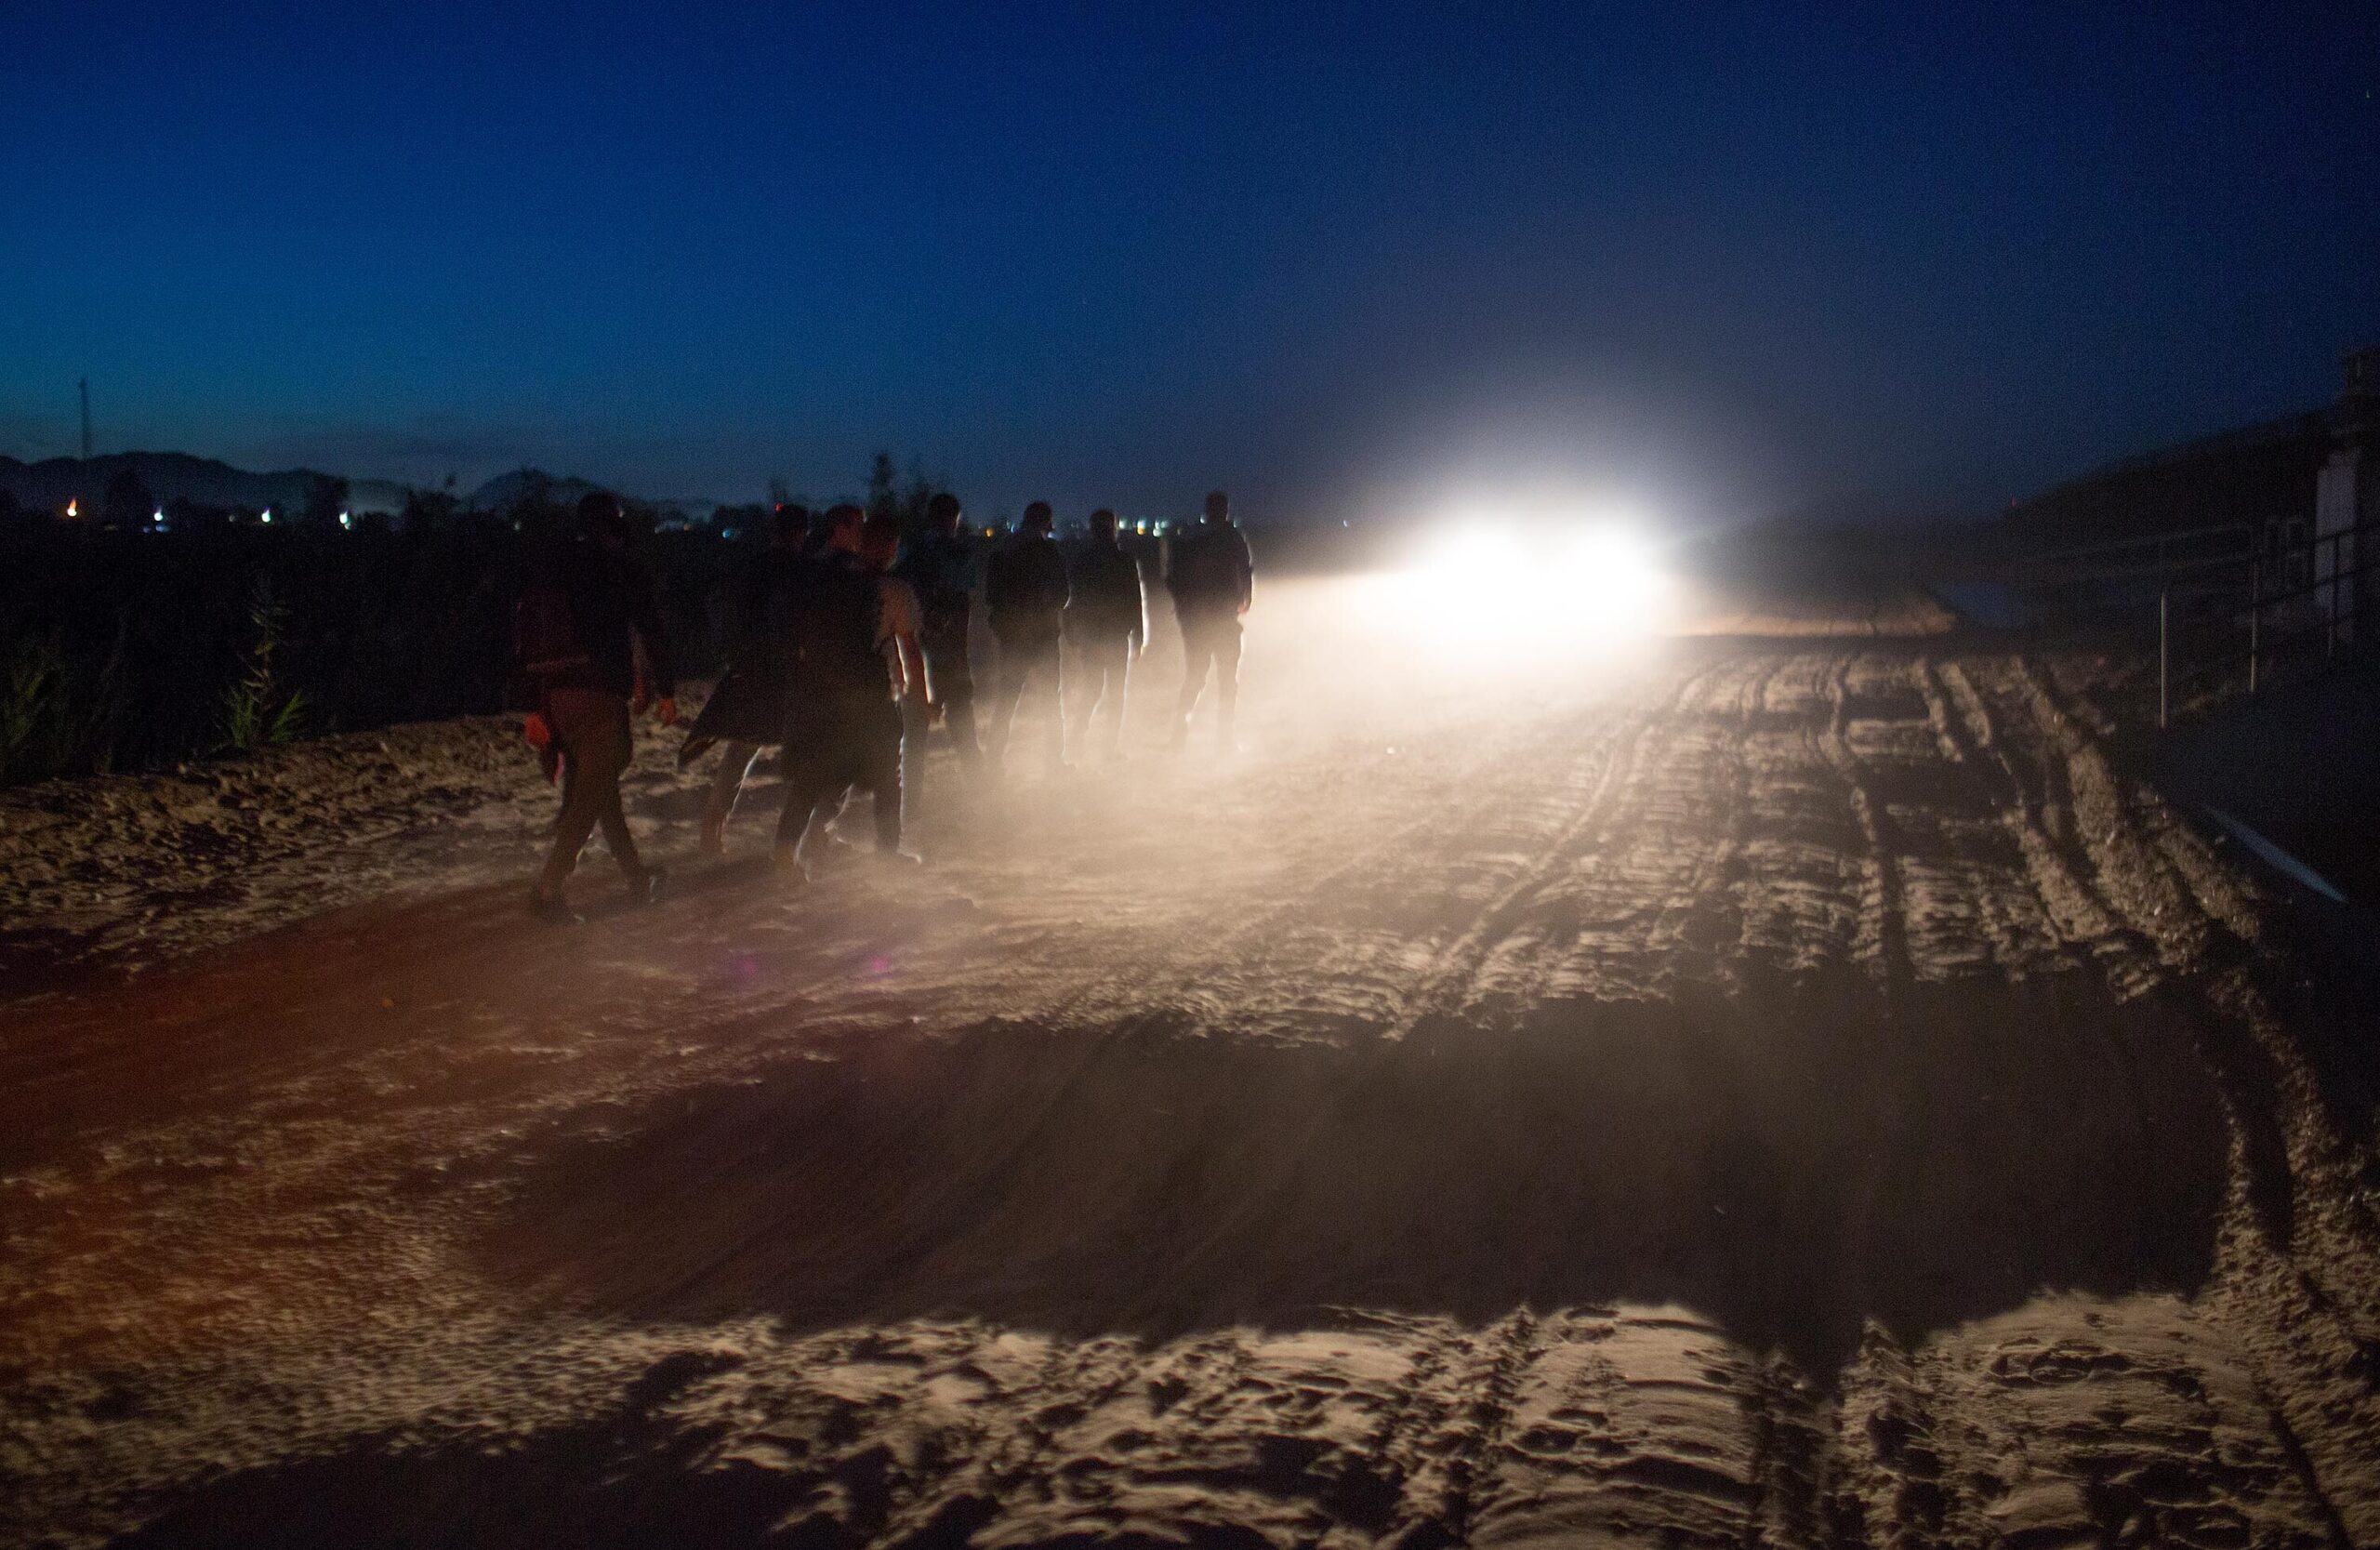 <i>Andrew Lichtenstein/Corbis News/Getty Images</i><br/>Central American asylum seekers are detained by the the US Border Patrol after they crossed into the United States from Mexico on April 29 near Yuma